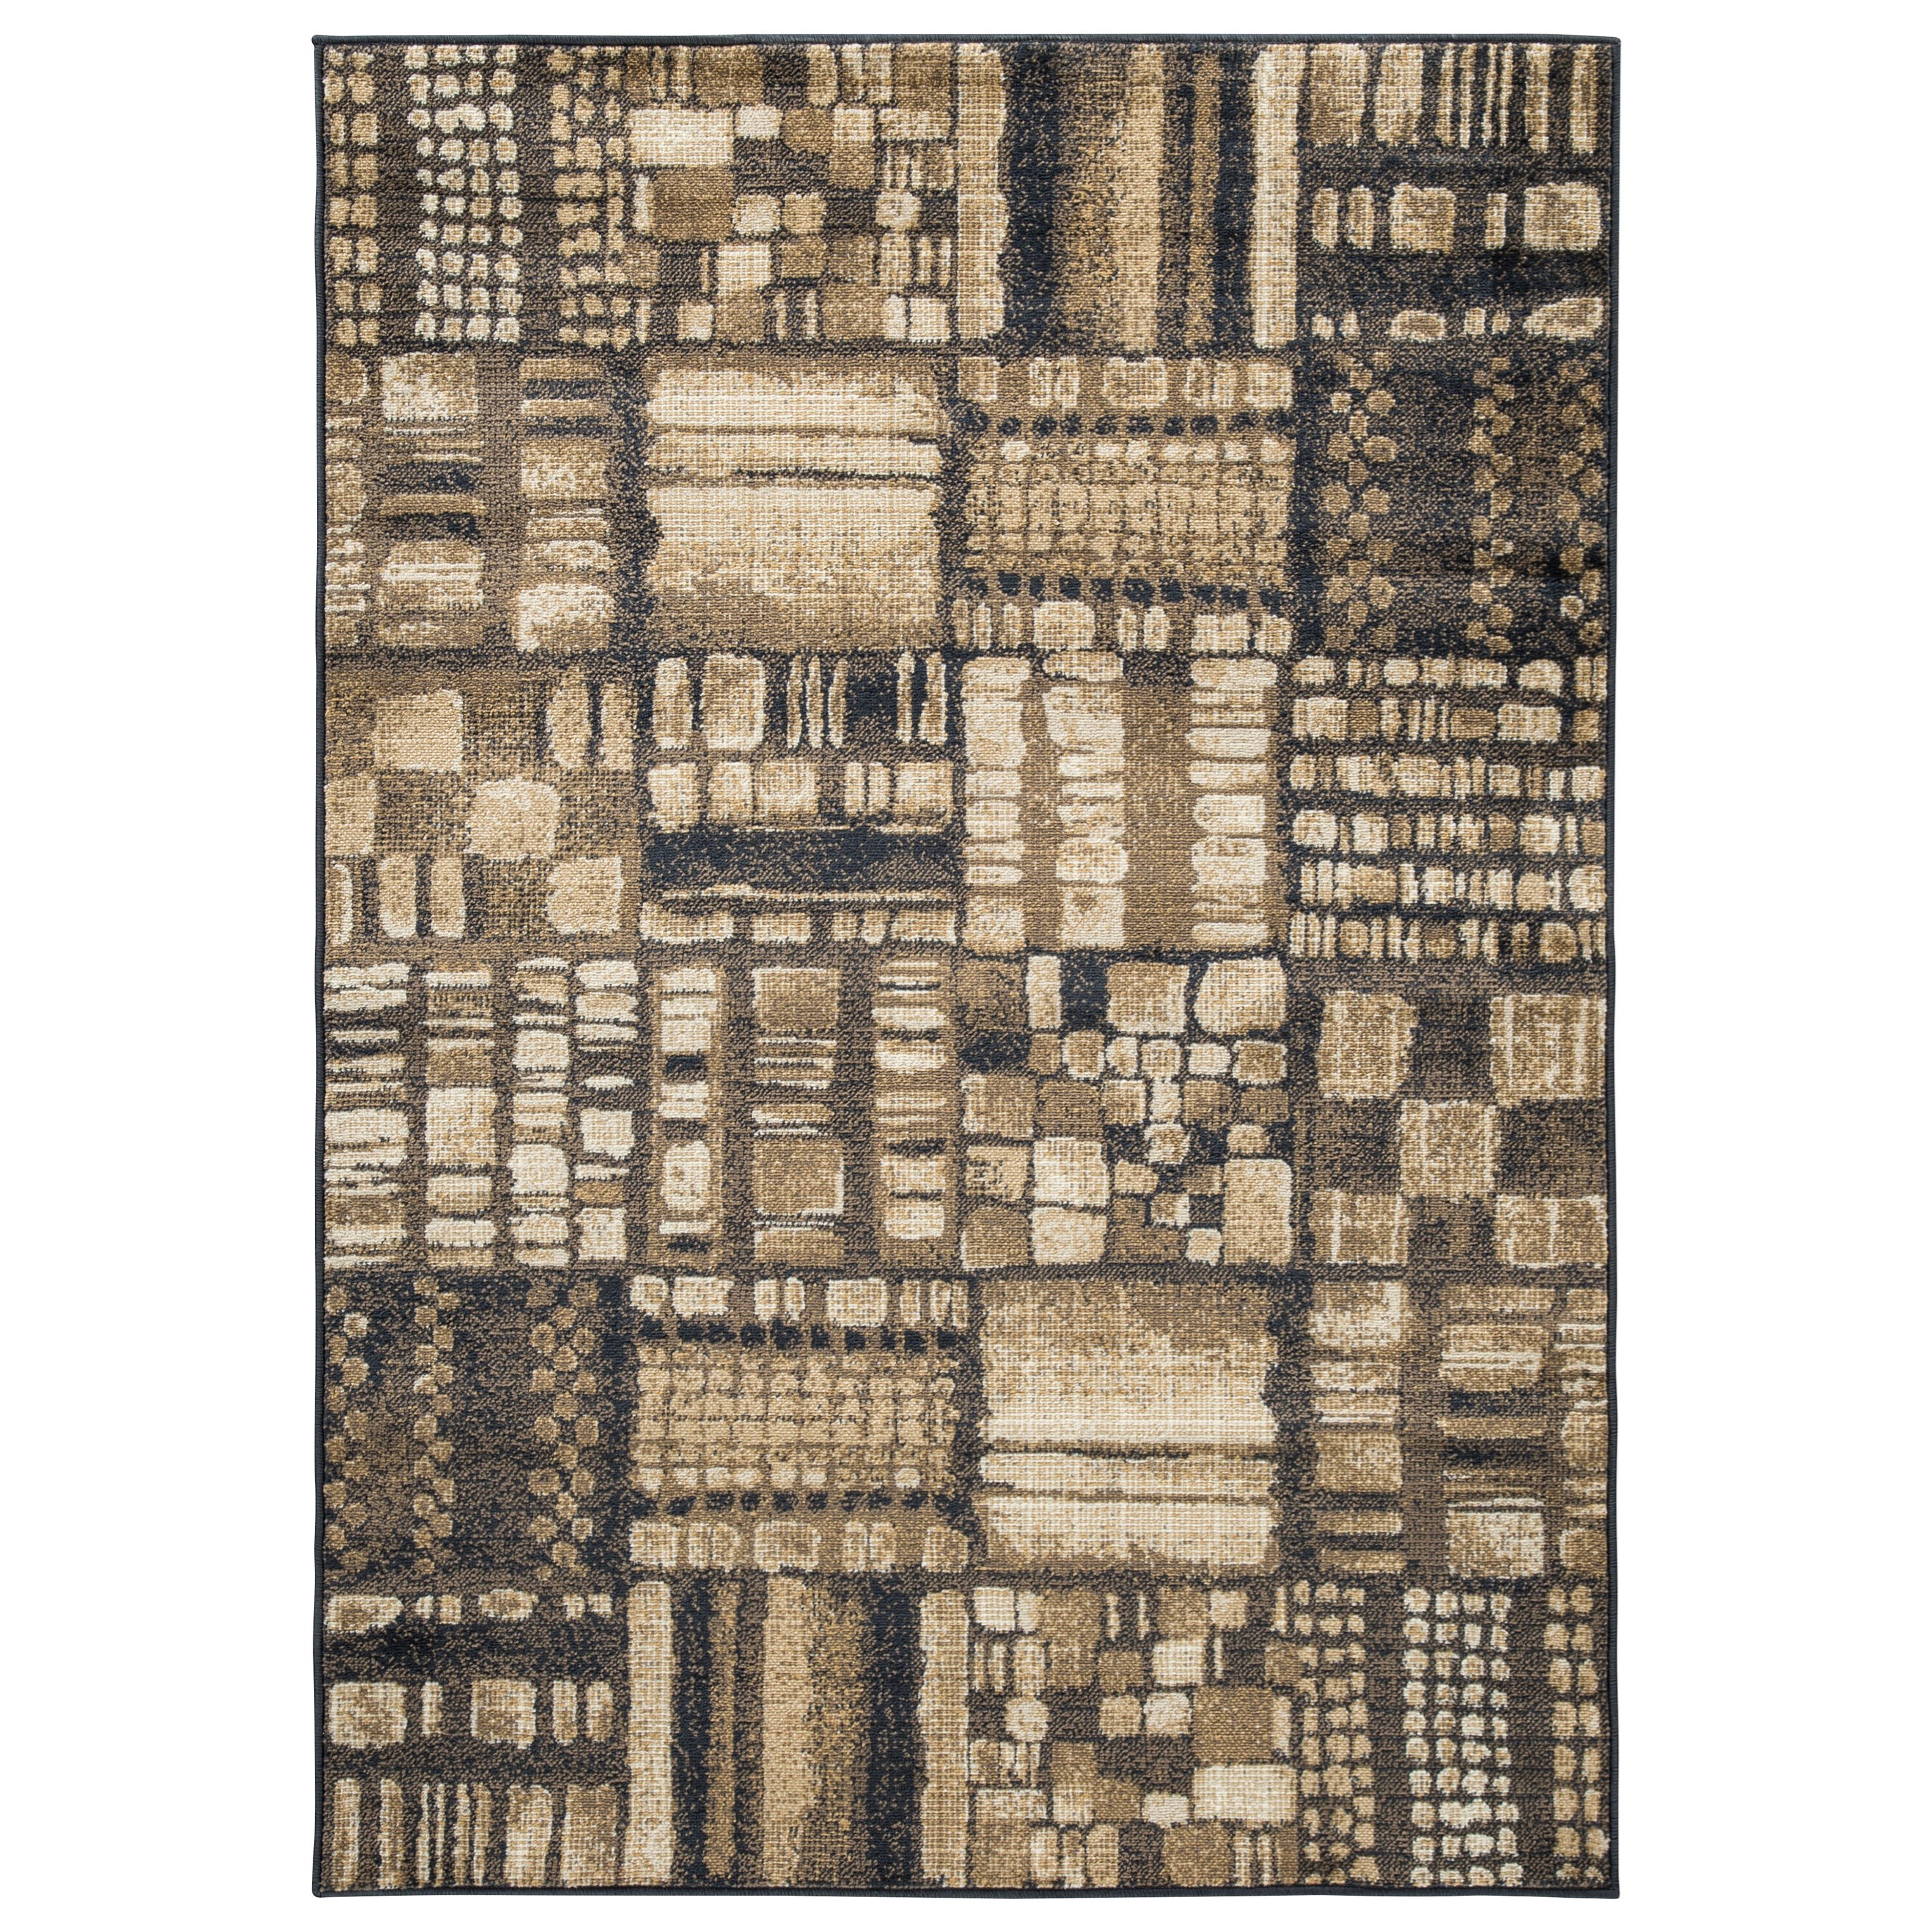 Contemporary Area Rugs Hilliard Black/Brown Large Rug by Signature Design by Ashley at Northeast Factory Direct